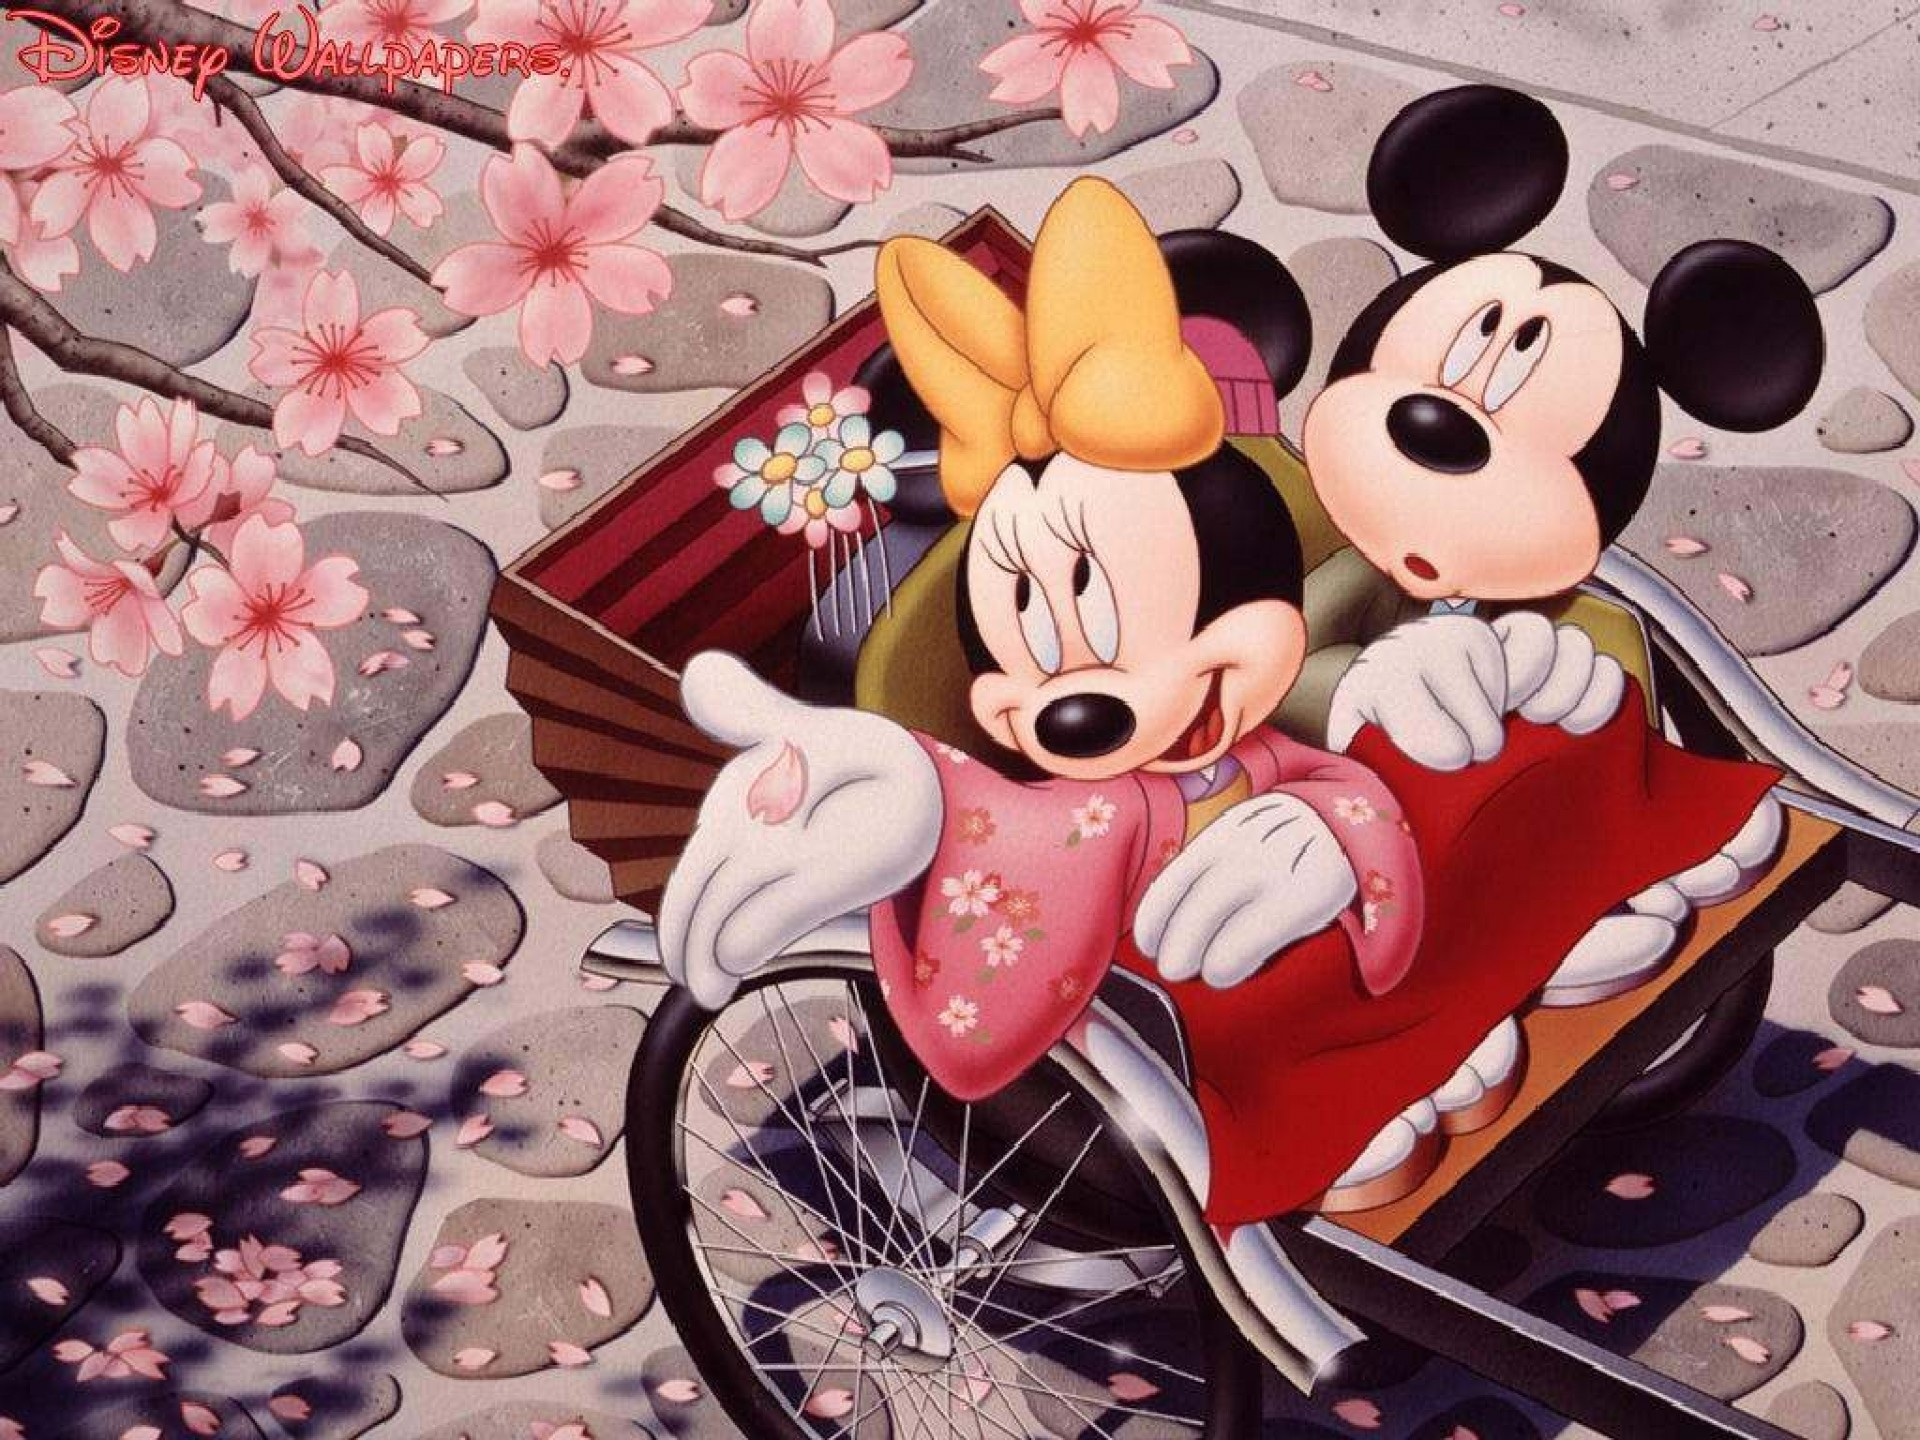 1920x1440 HD Wallpaper and background photos of Mickey and Minnie for fans of Disney  images.